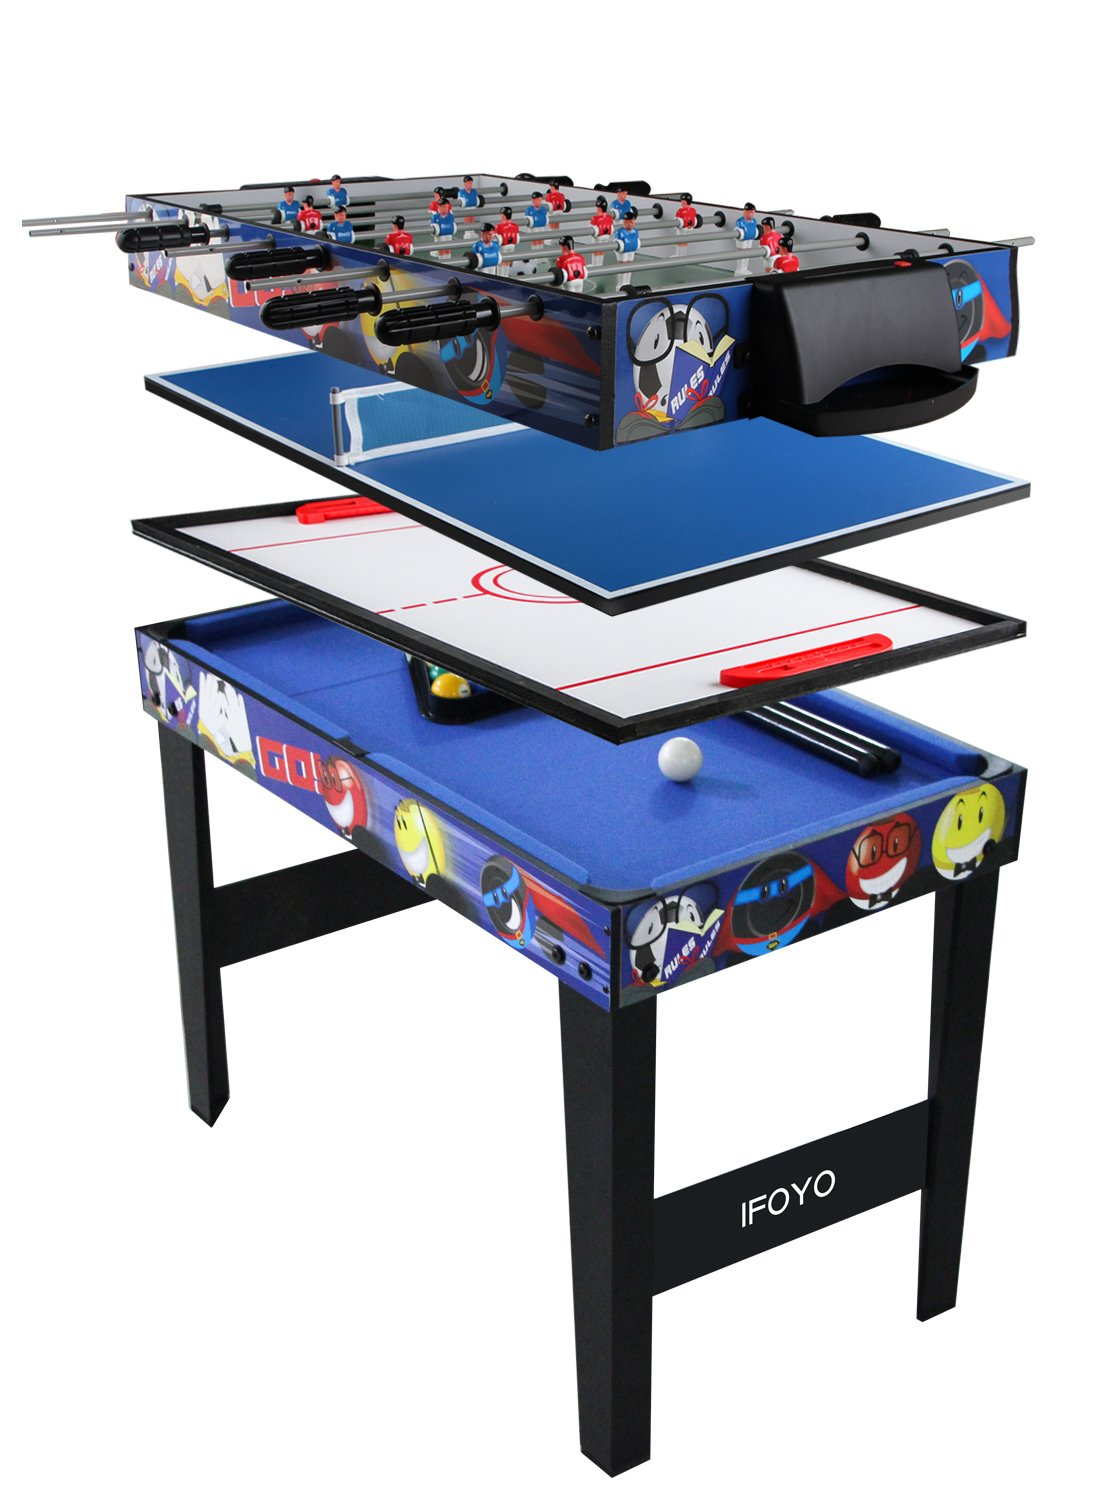 Vocheer 4 in 1 Multi Combo Game Table, Hockey Table, Foosball Table with Soccer, Pool Table, Table Tennis Table for Home, Game Room by Vocheer